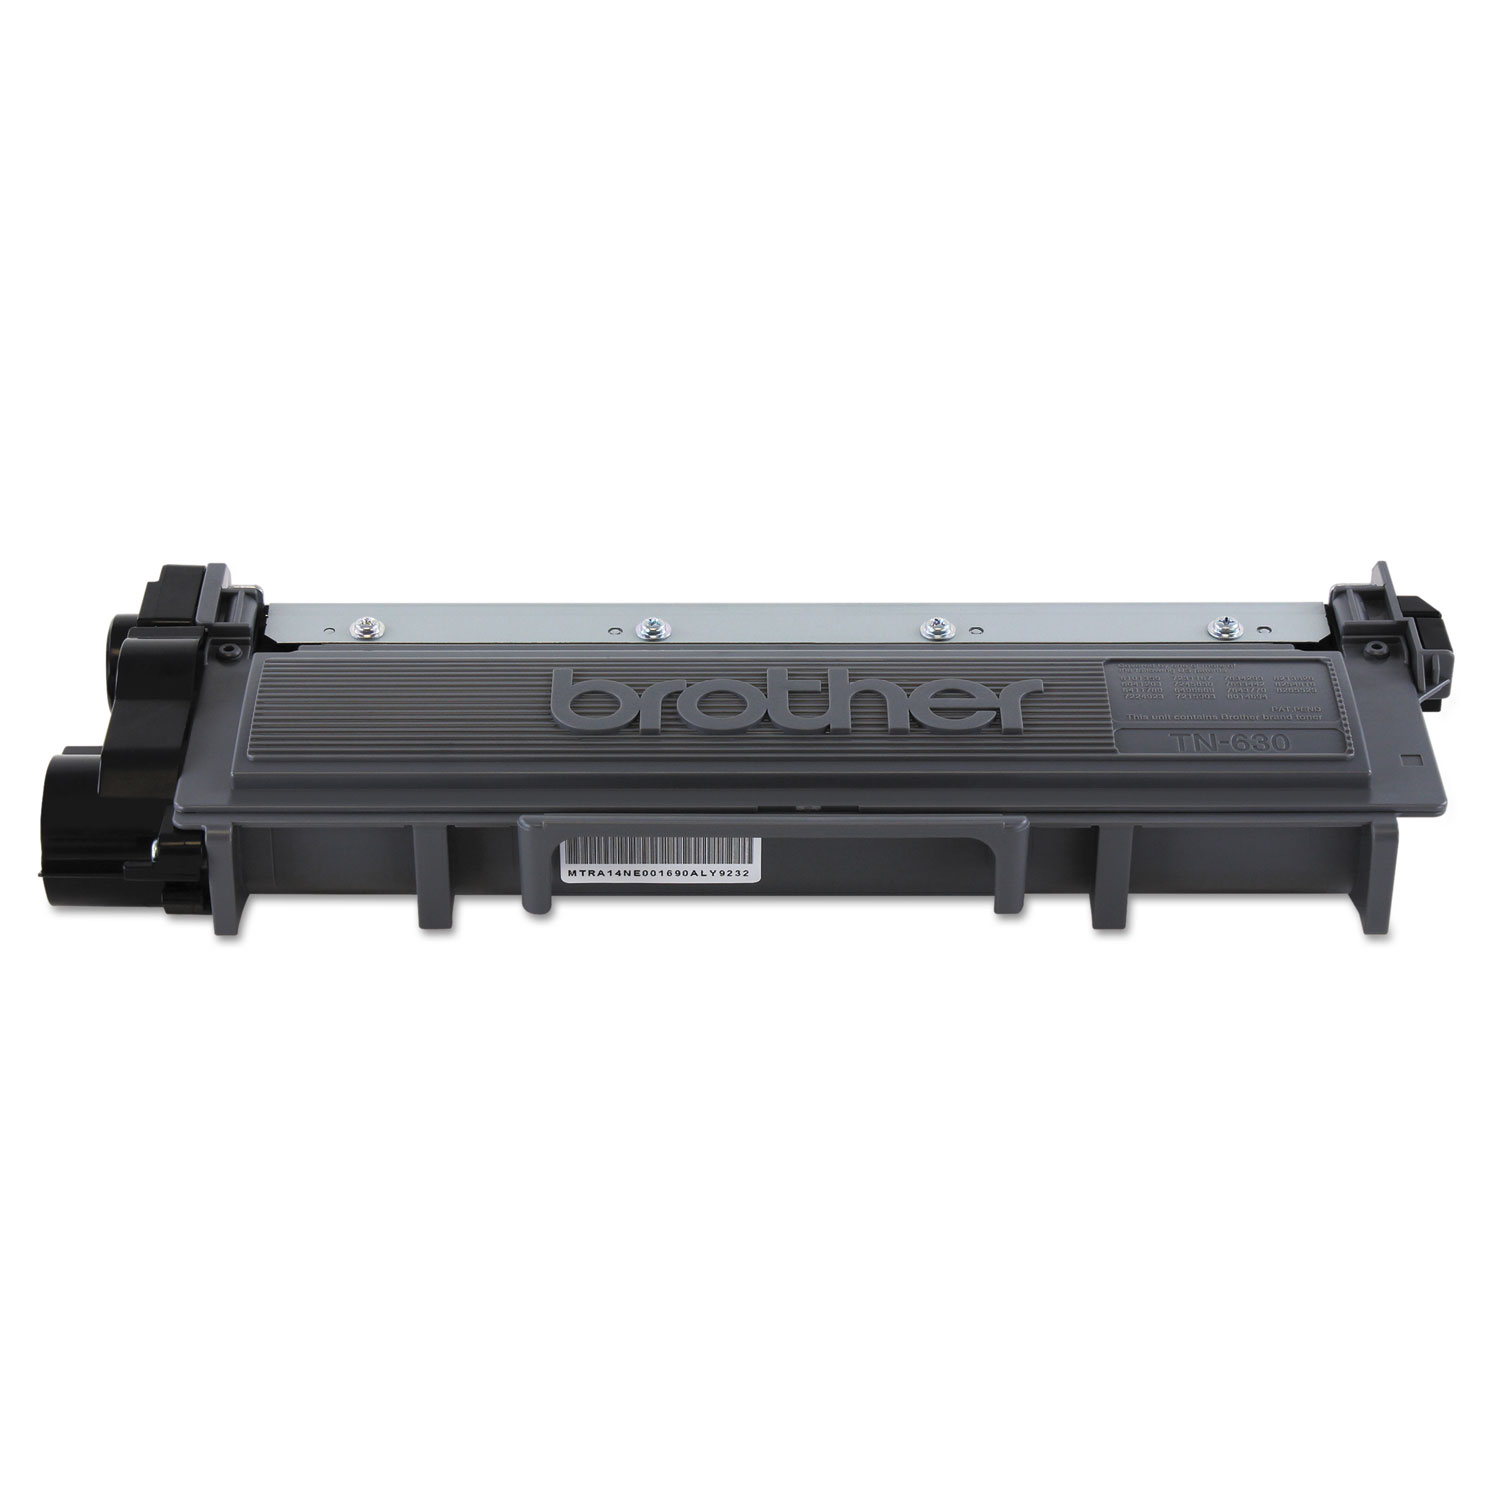 TN630 Toner, 1200 Page-Yield, Black